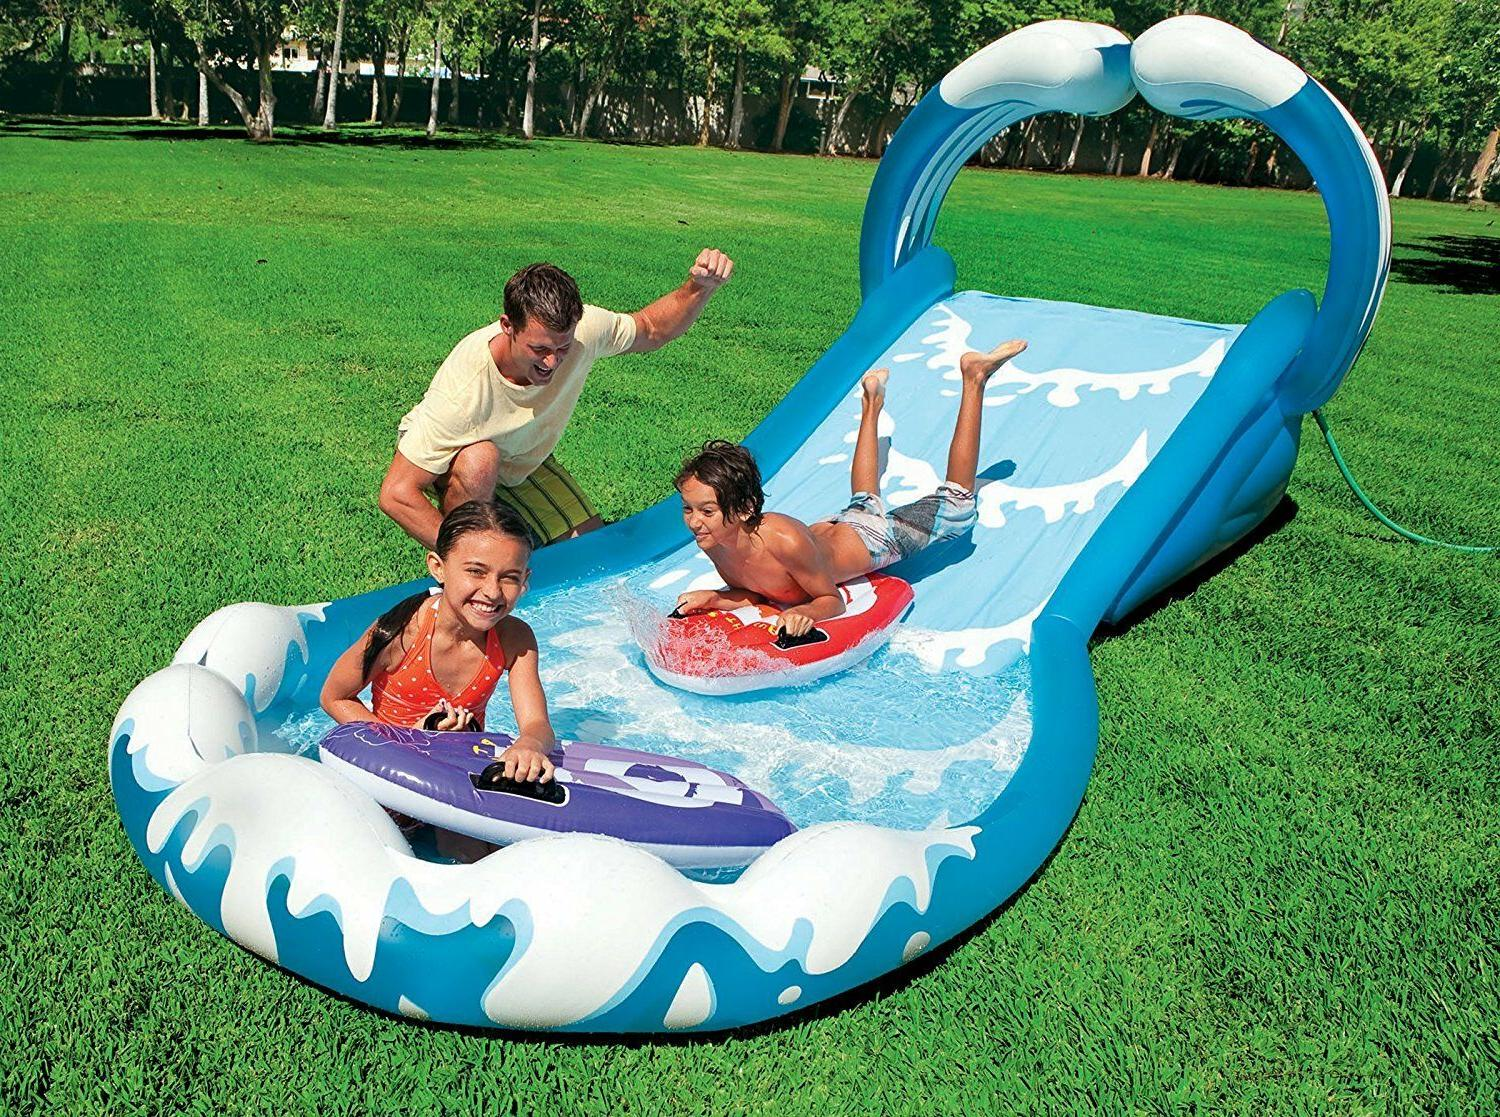 Intex Inflatable Pool Play Rainbow Ring Center Slide Pump